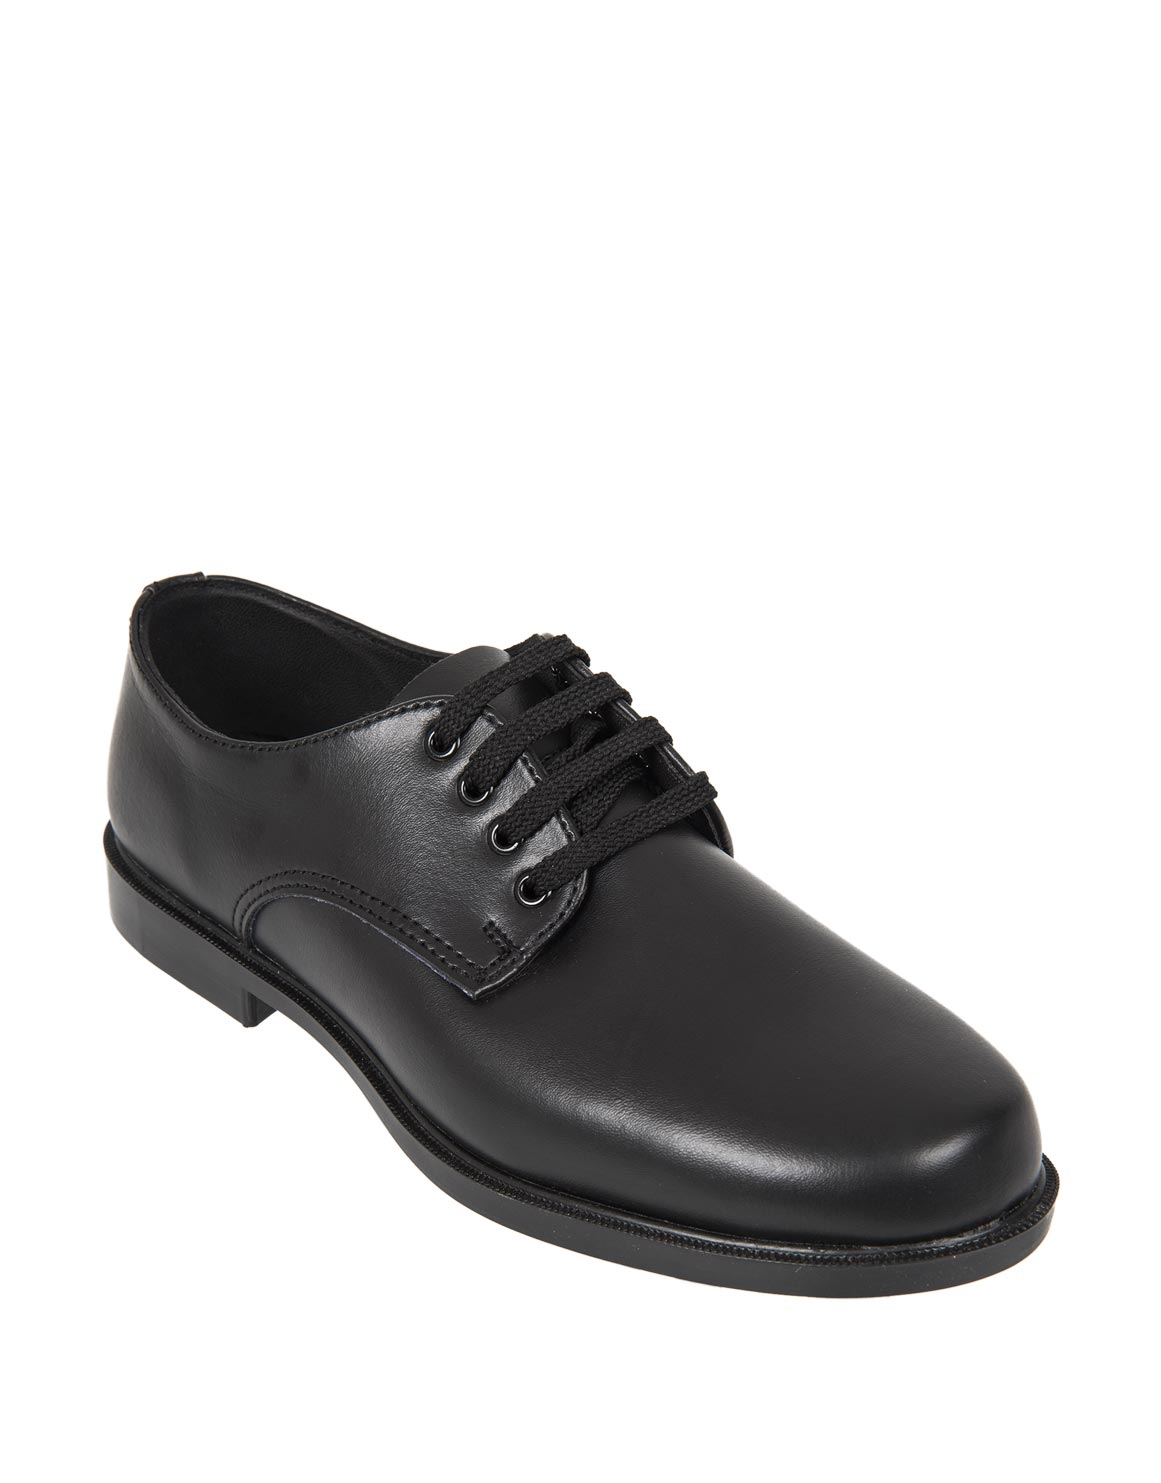 Eco Leather Lace-up School Shoes (Size